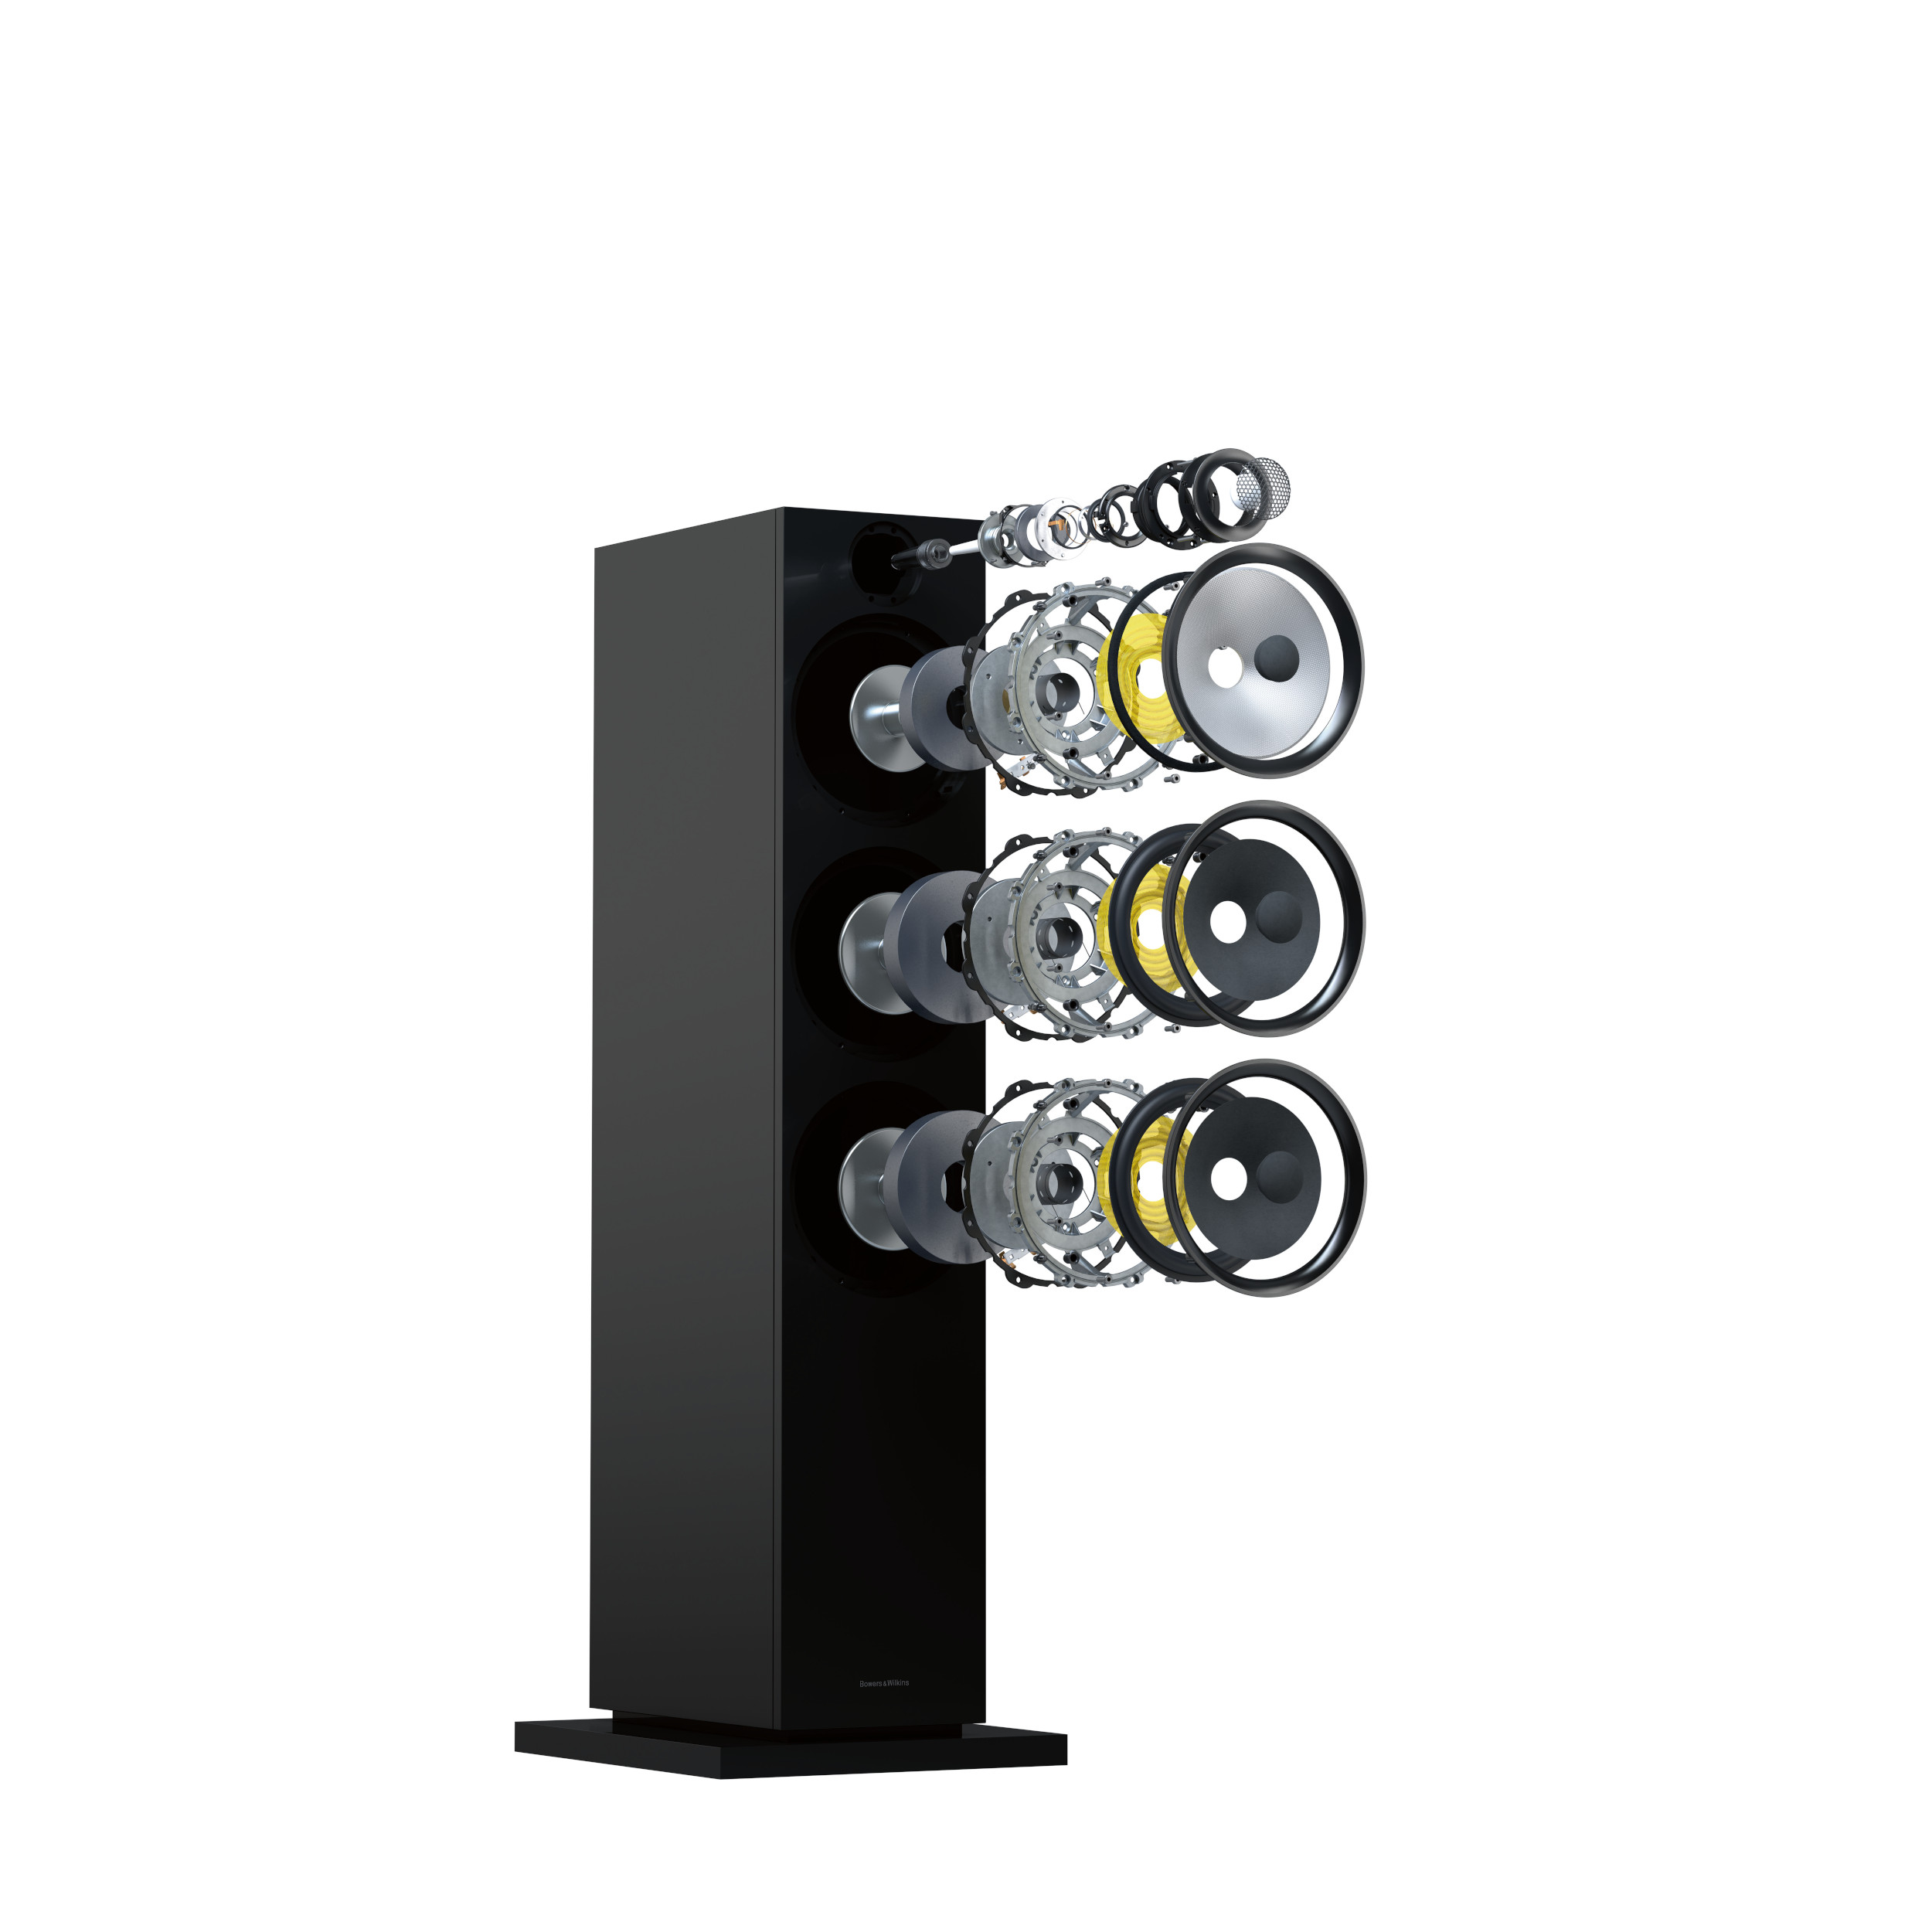 High 603 Exploded Render New Bowers and Wilkins 600 Series speakers set to ignite Sound Market